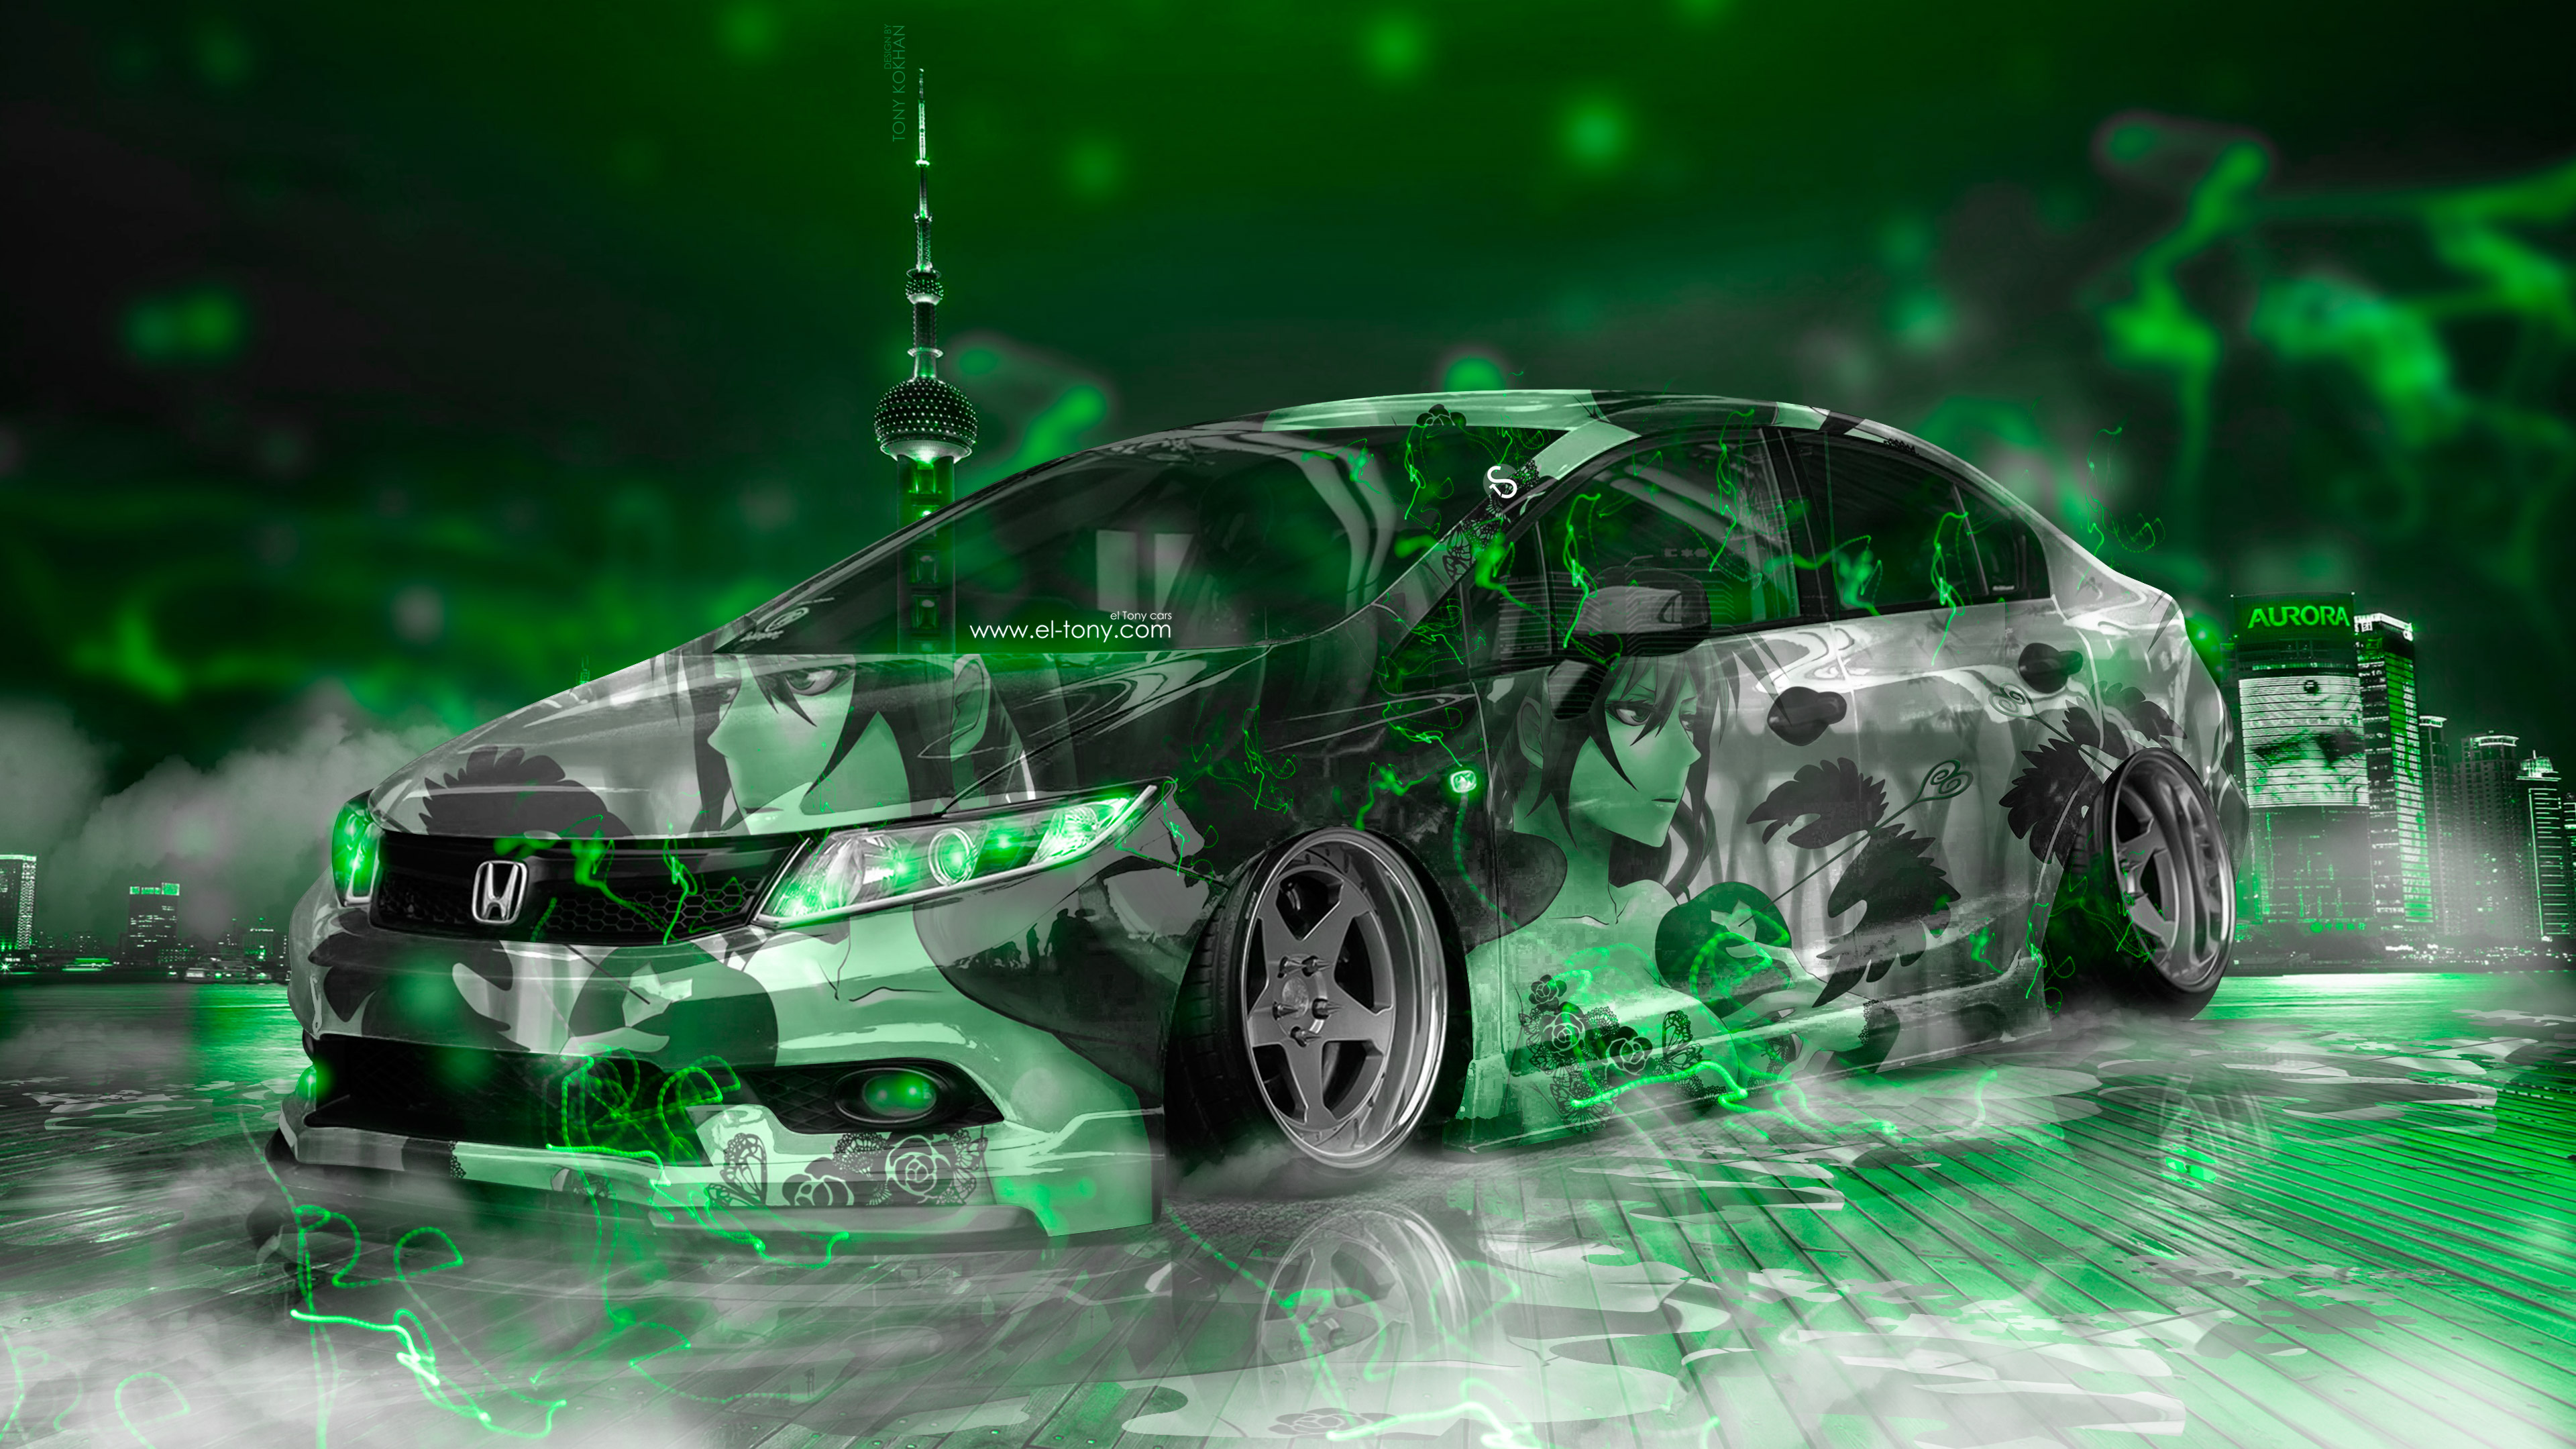 Bmw Girl Wallpaper Honda Civic Jdm Tuning Super Anime Girl Energy Night City